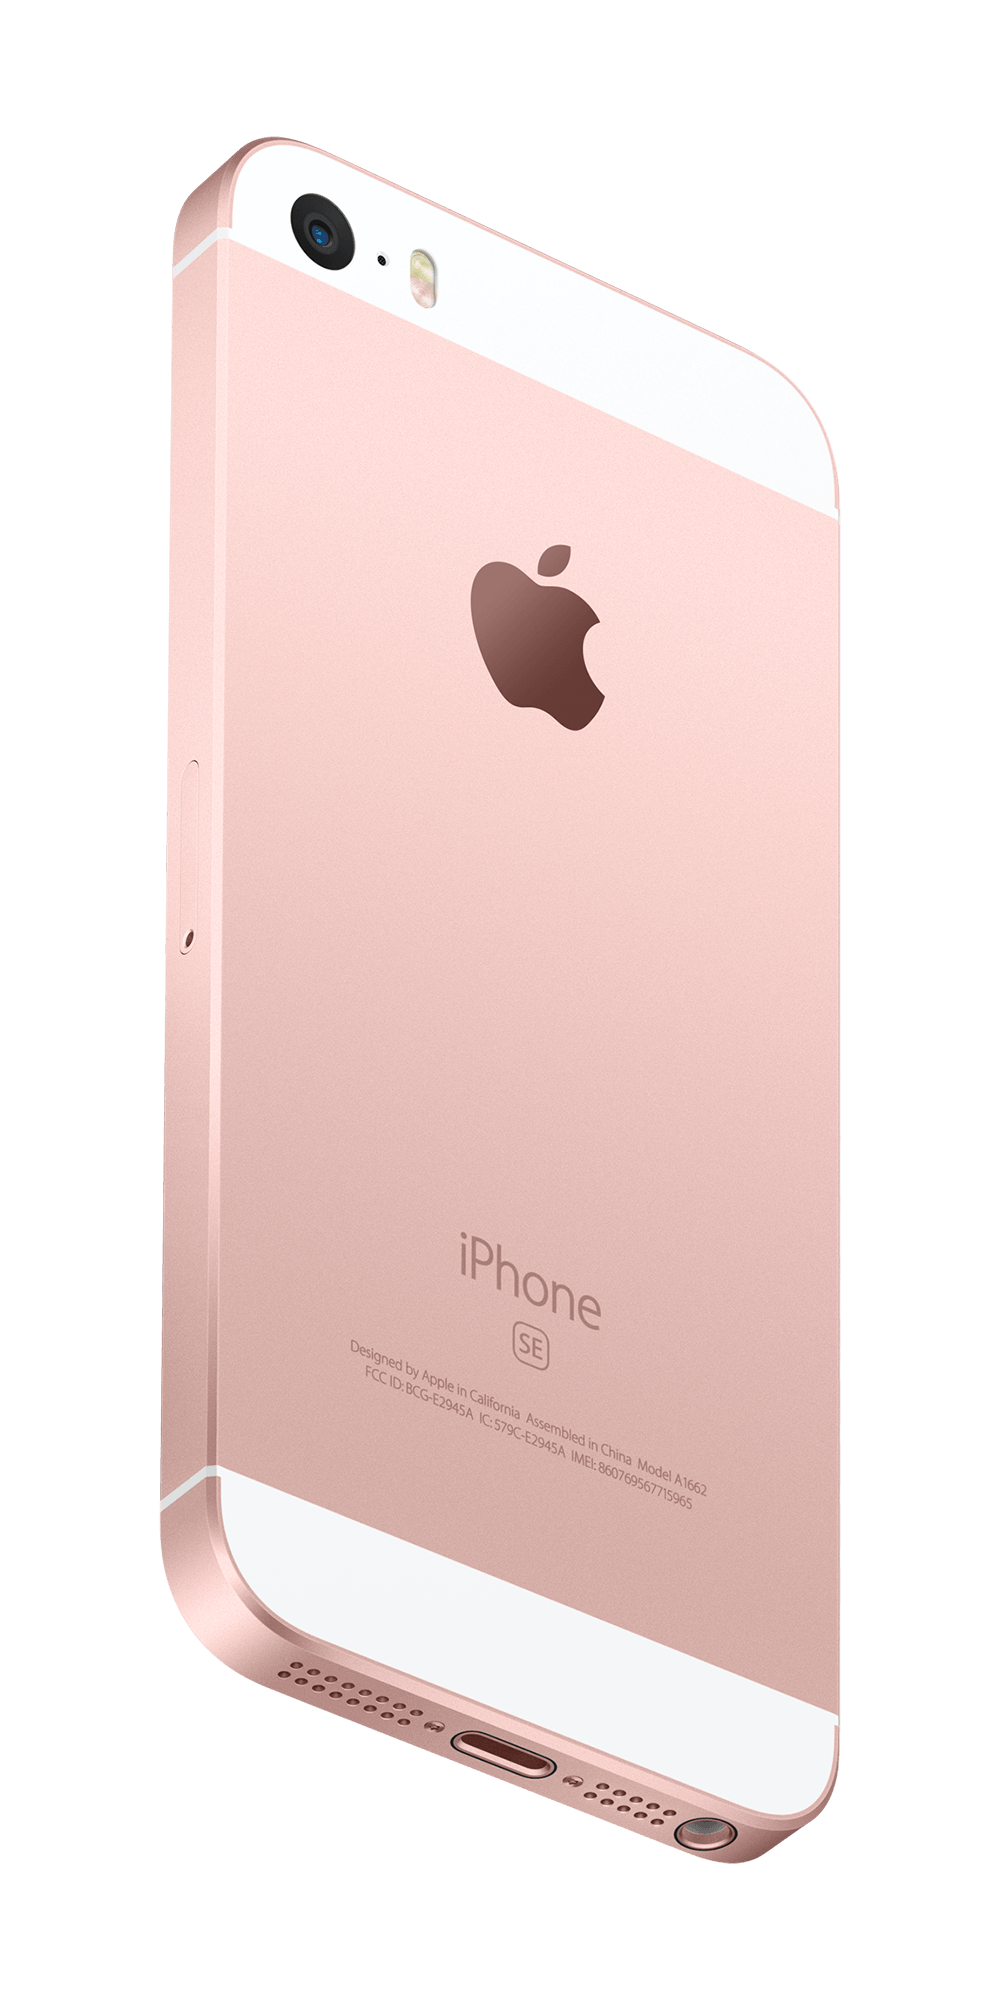 iPhone SE rose back 1000x2000px